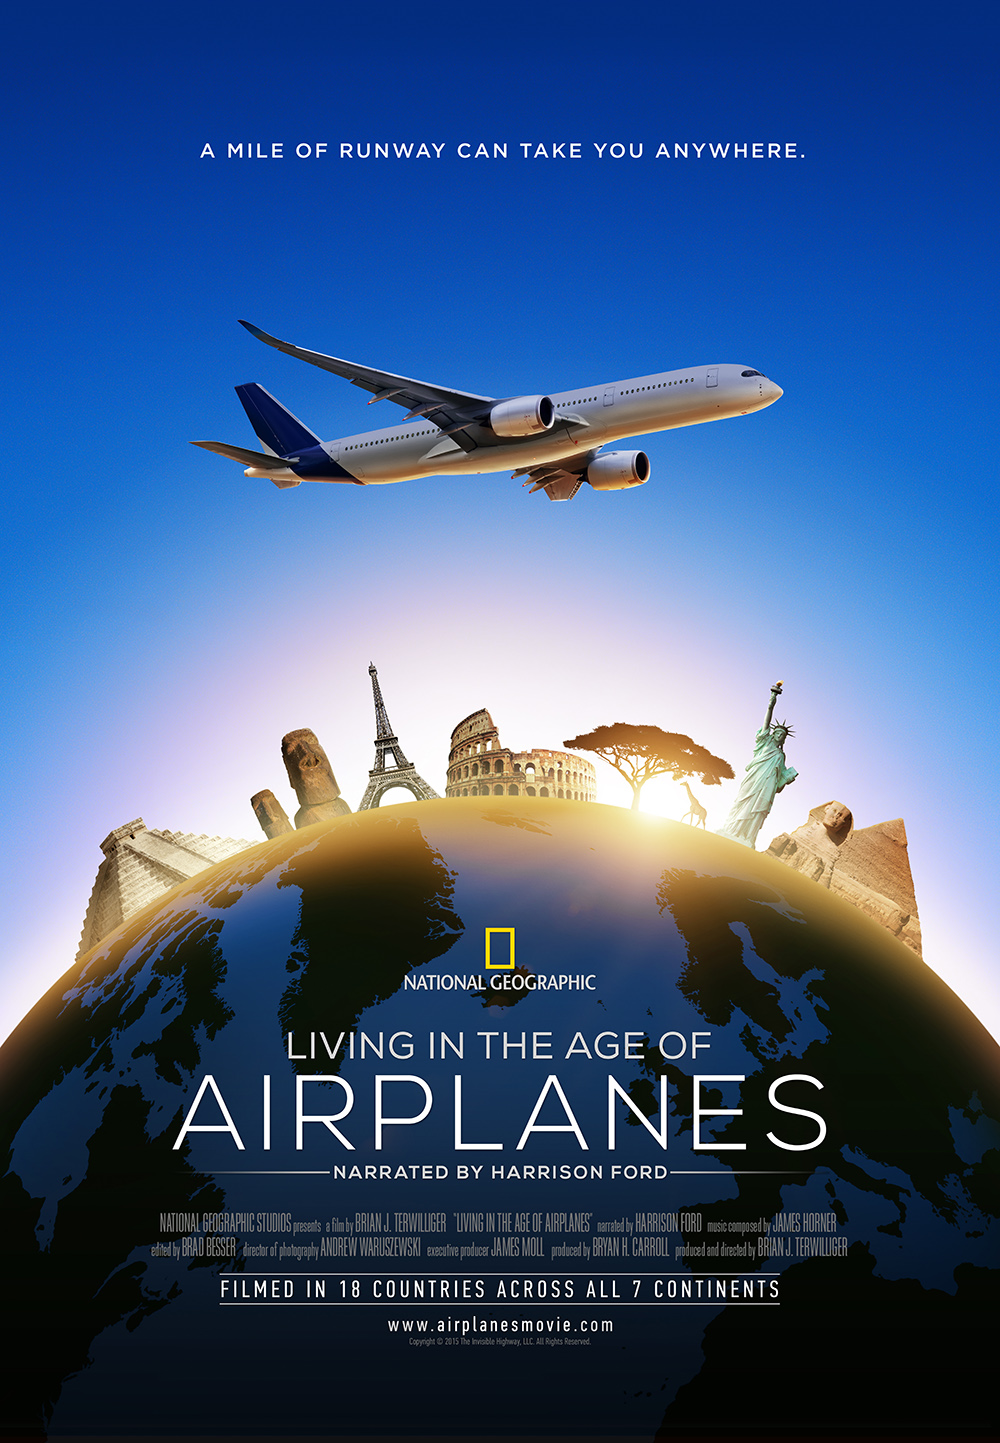 Living in the Age of Airplanes 3D movie